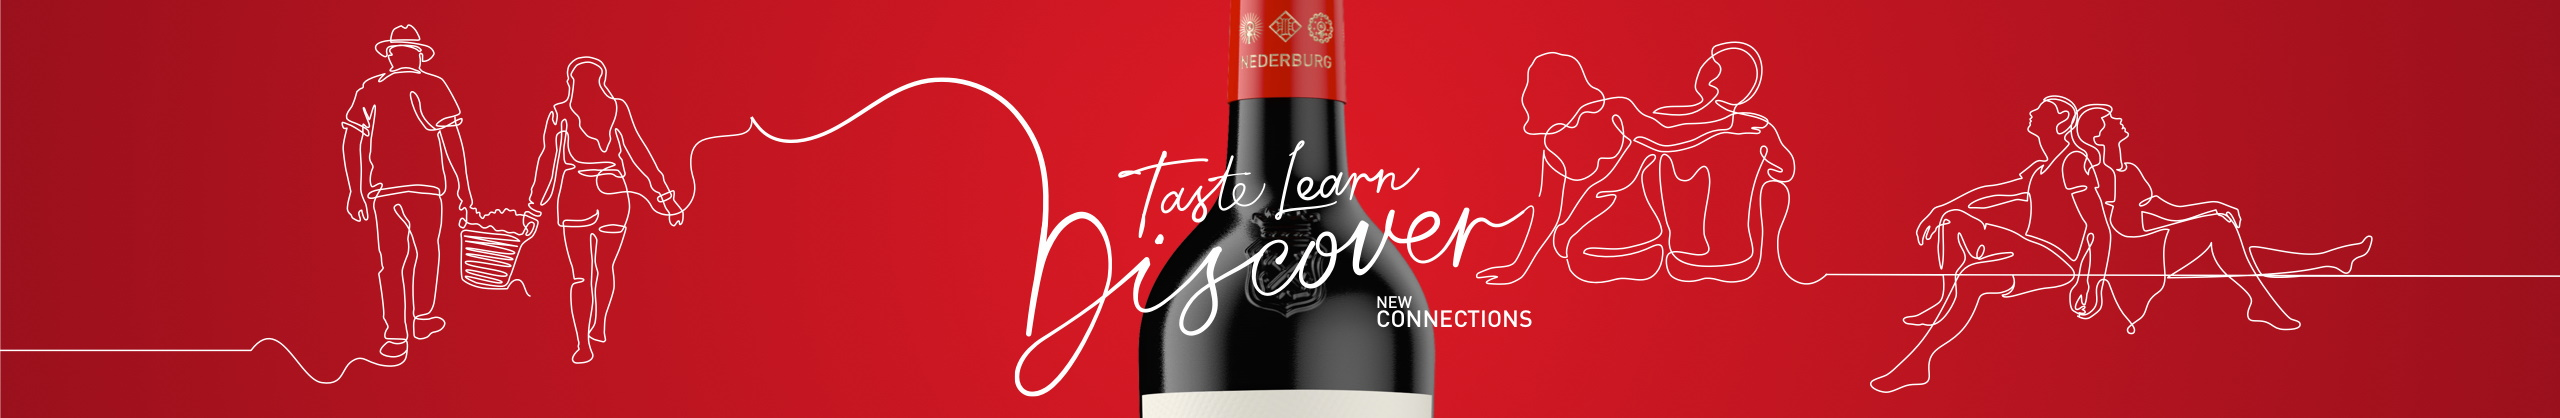 Taste Learn Discover - new connections